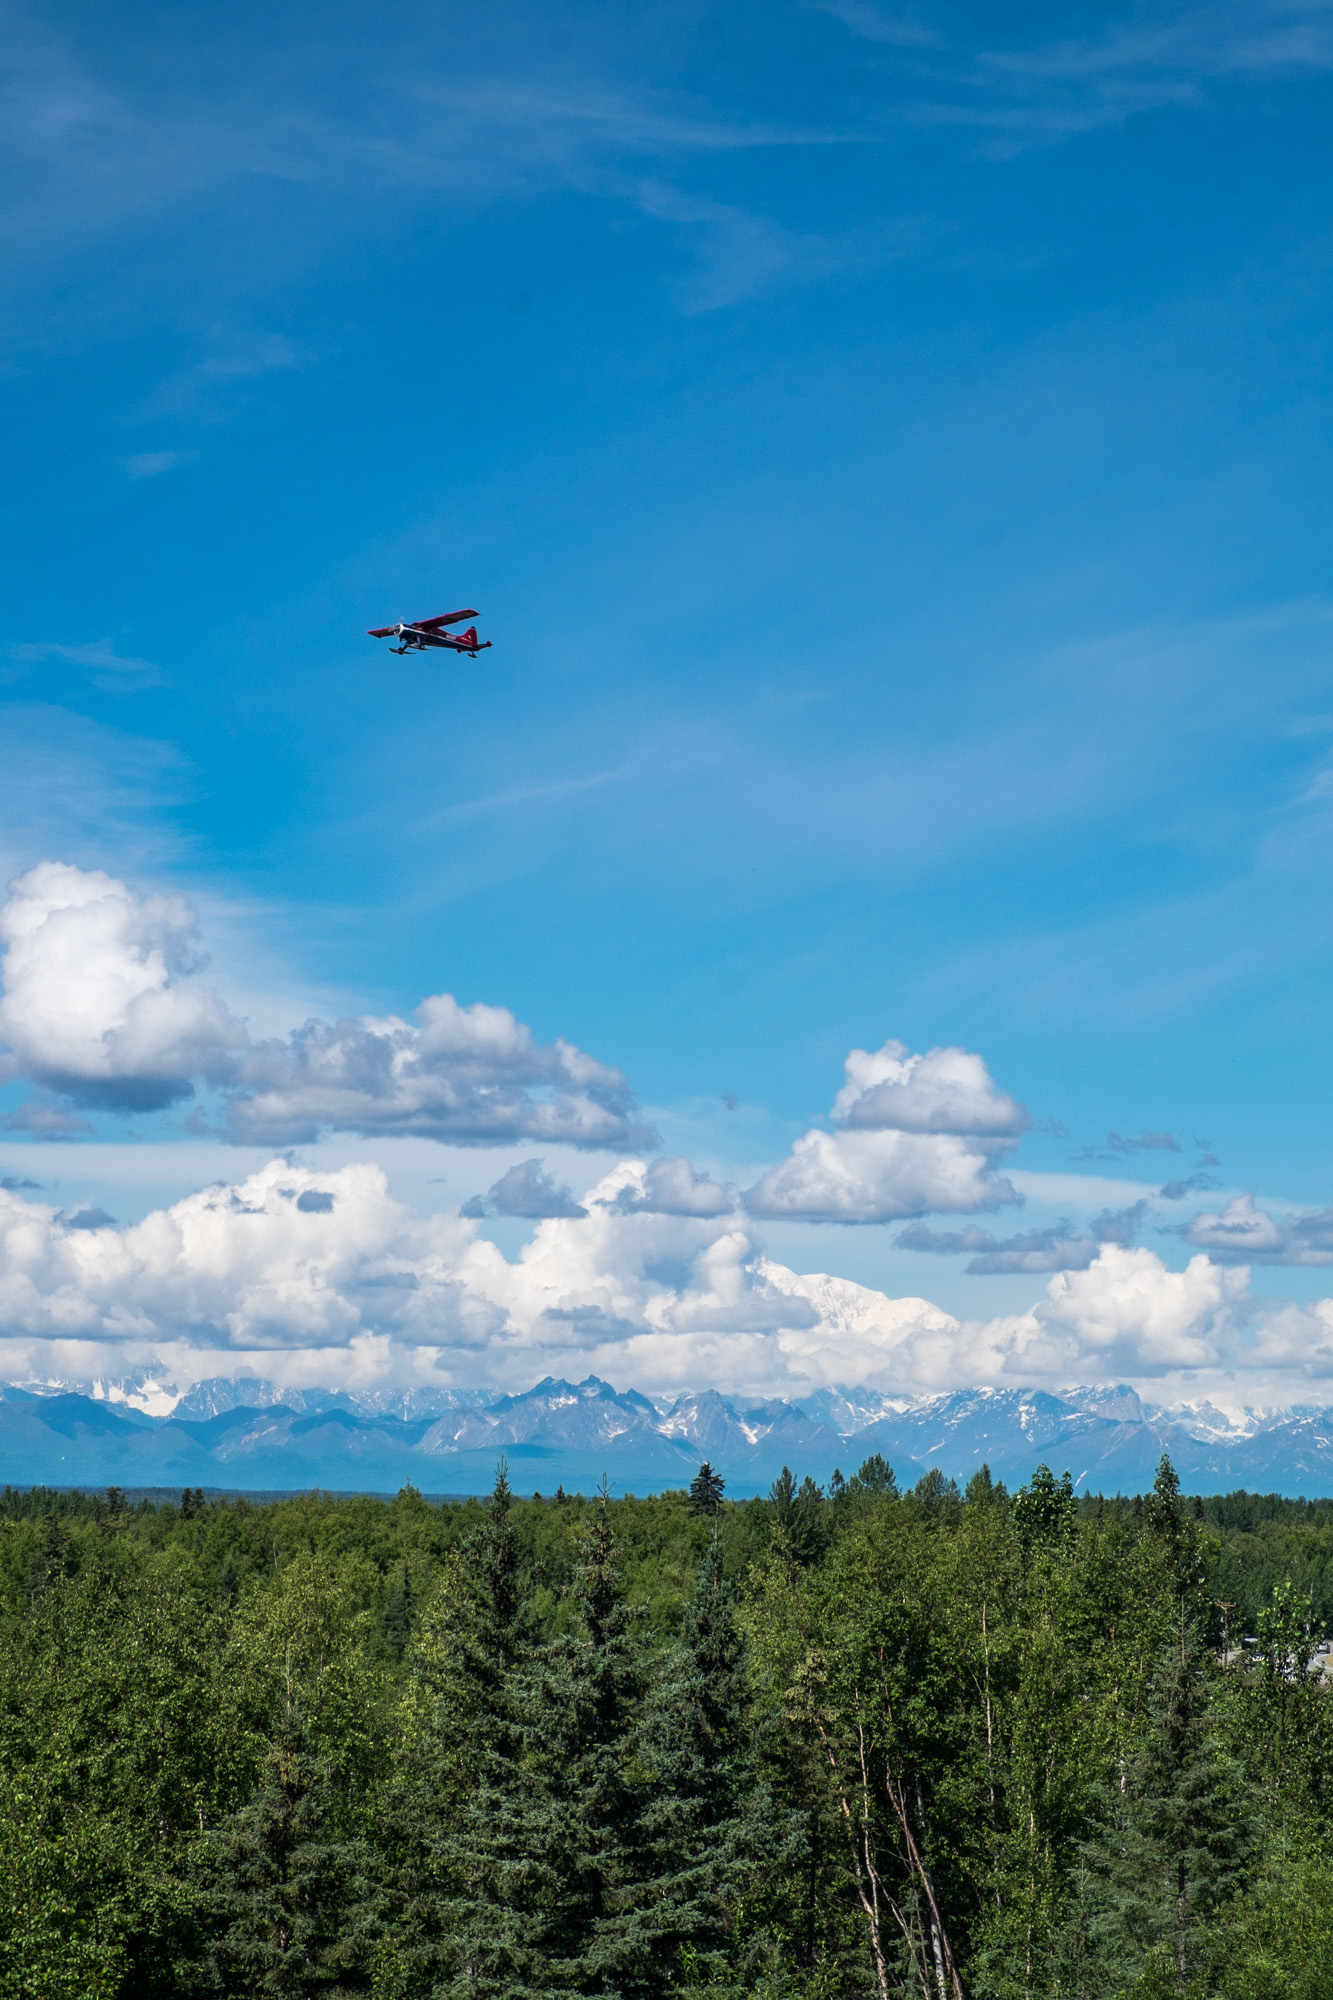 And when Denali is out, the flightseeing tours go bonkers.